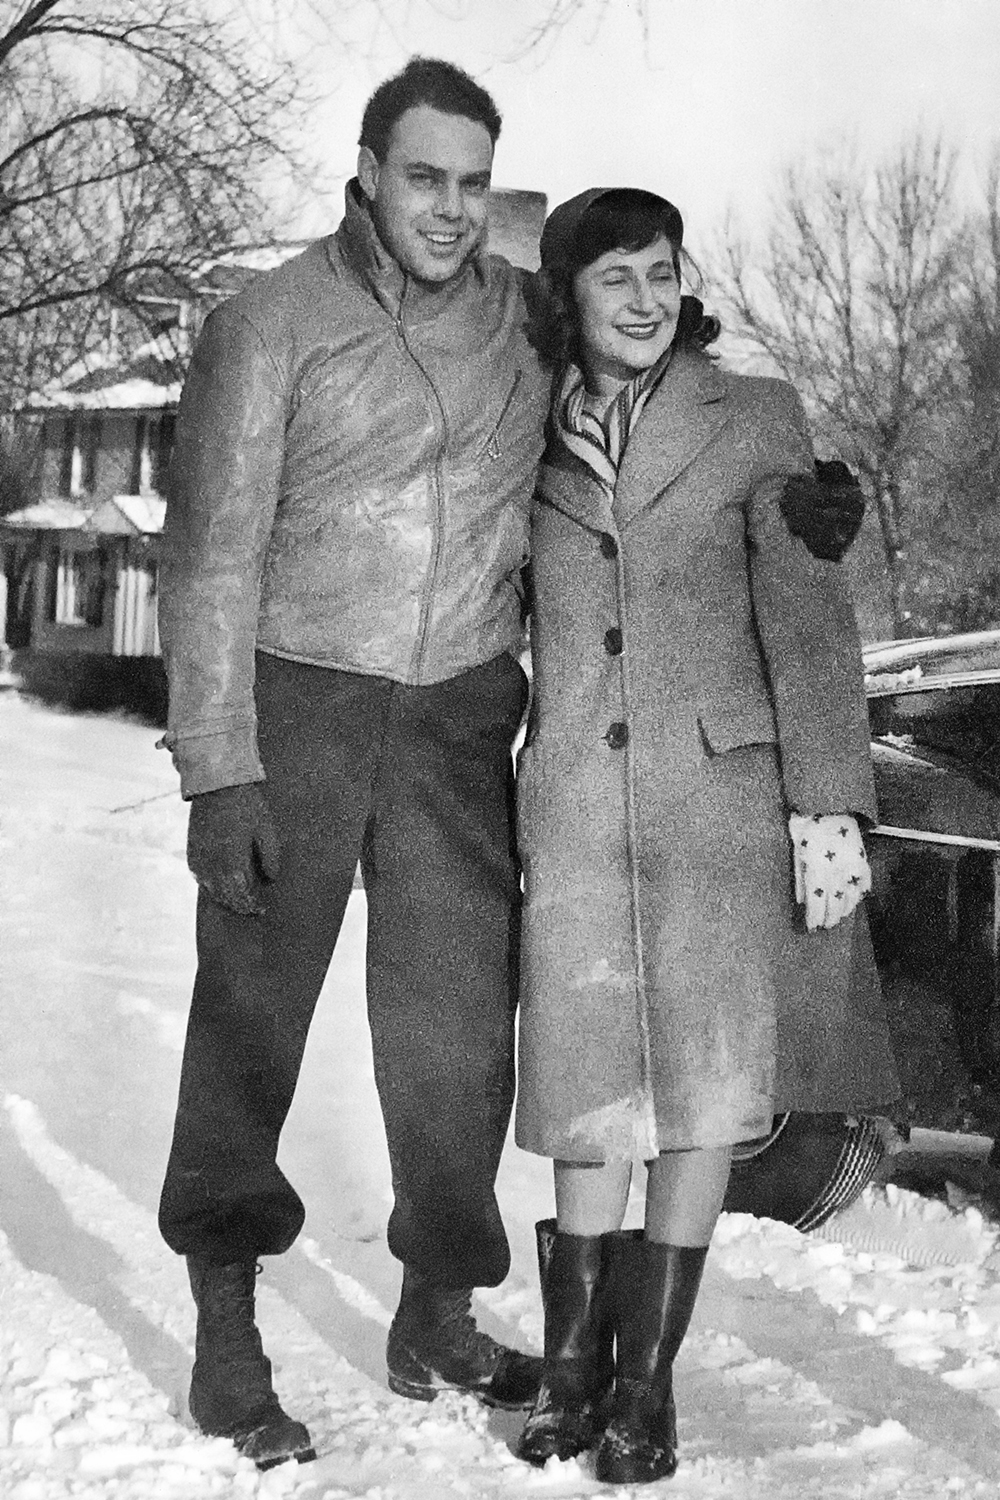 Anne and Doug, Winter 1947-48